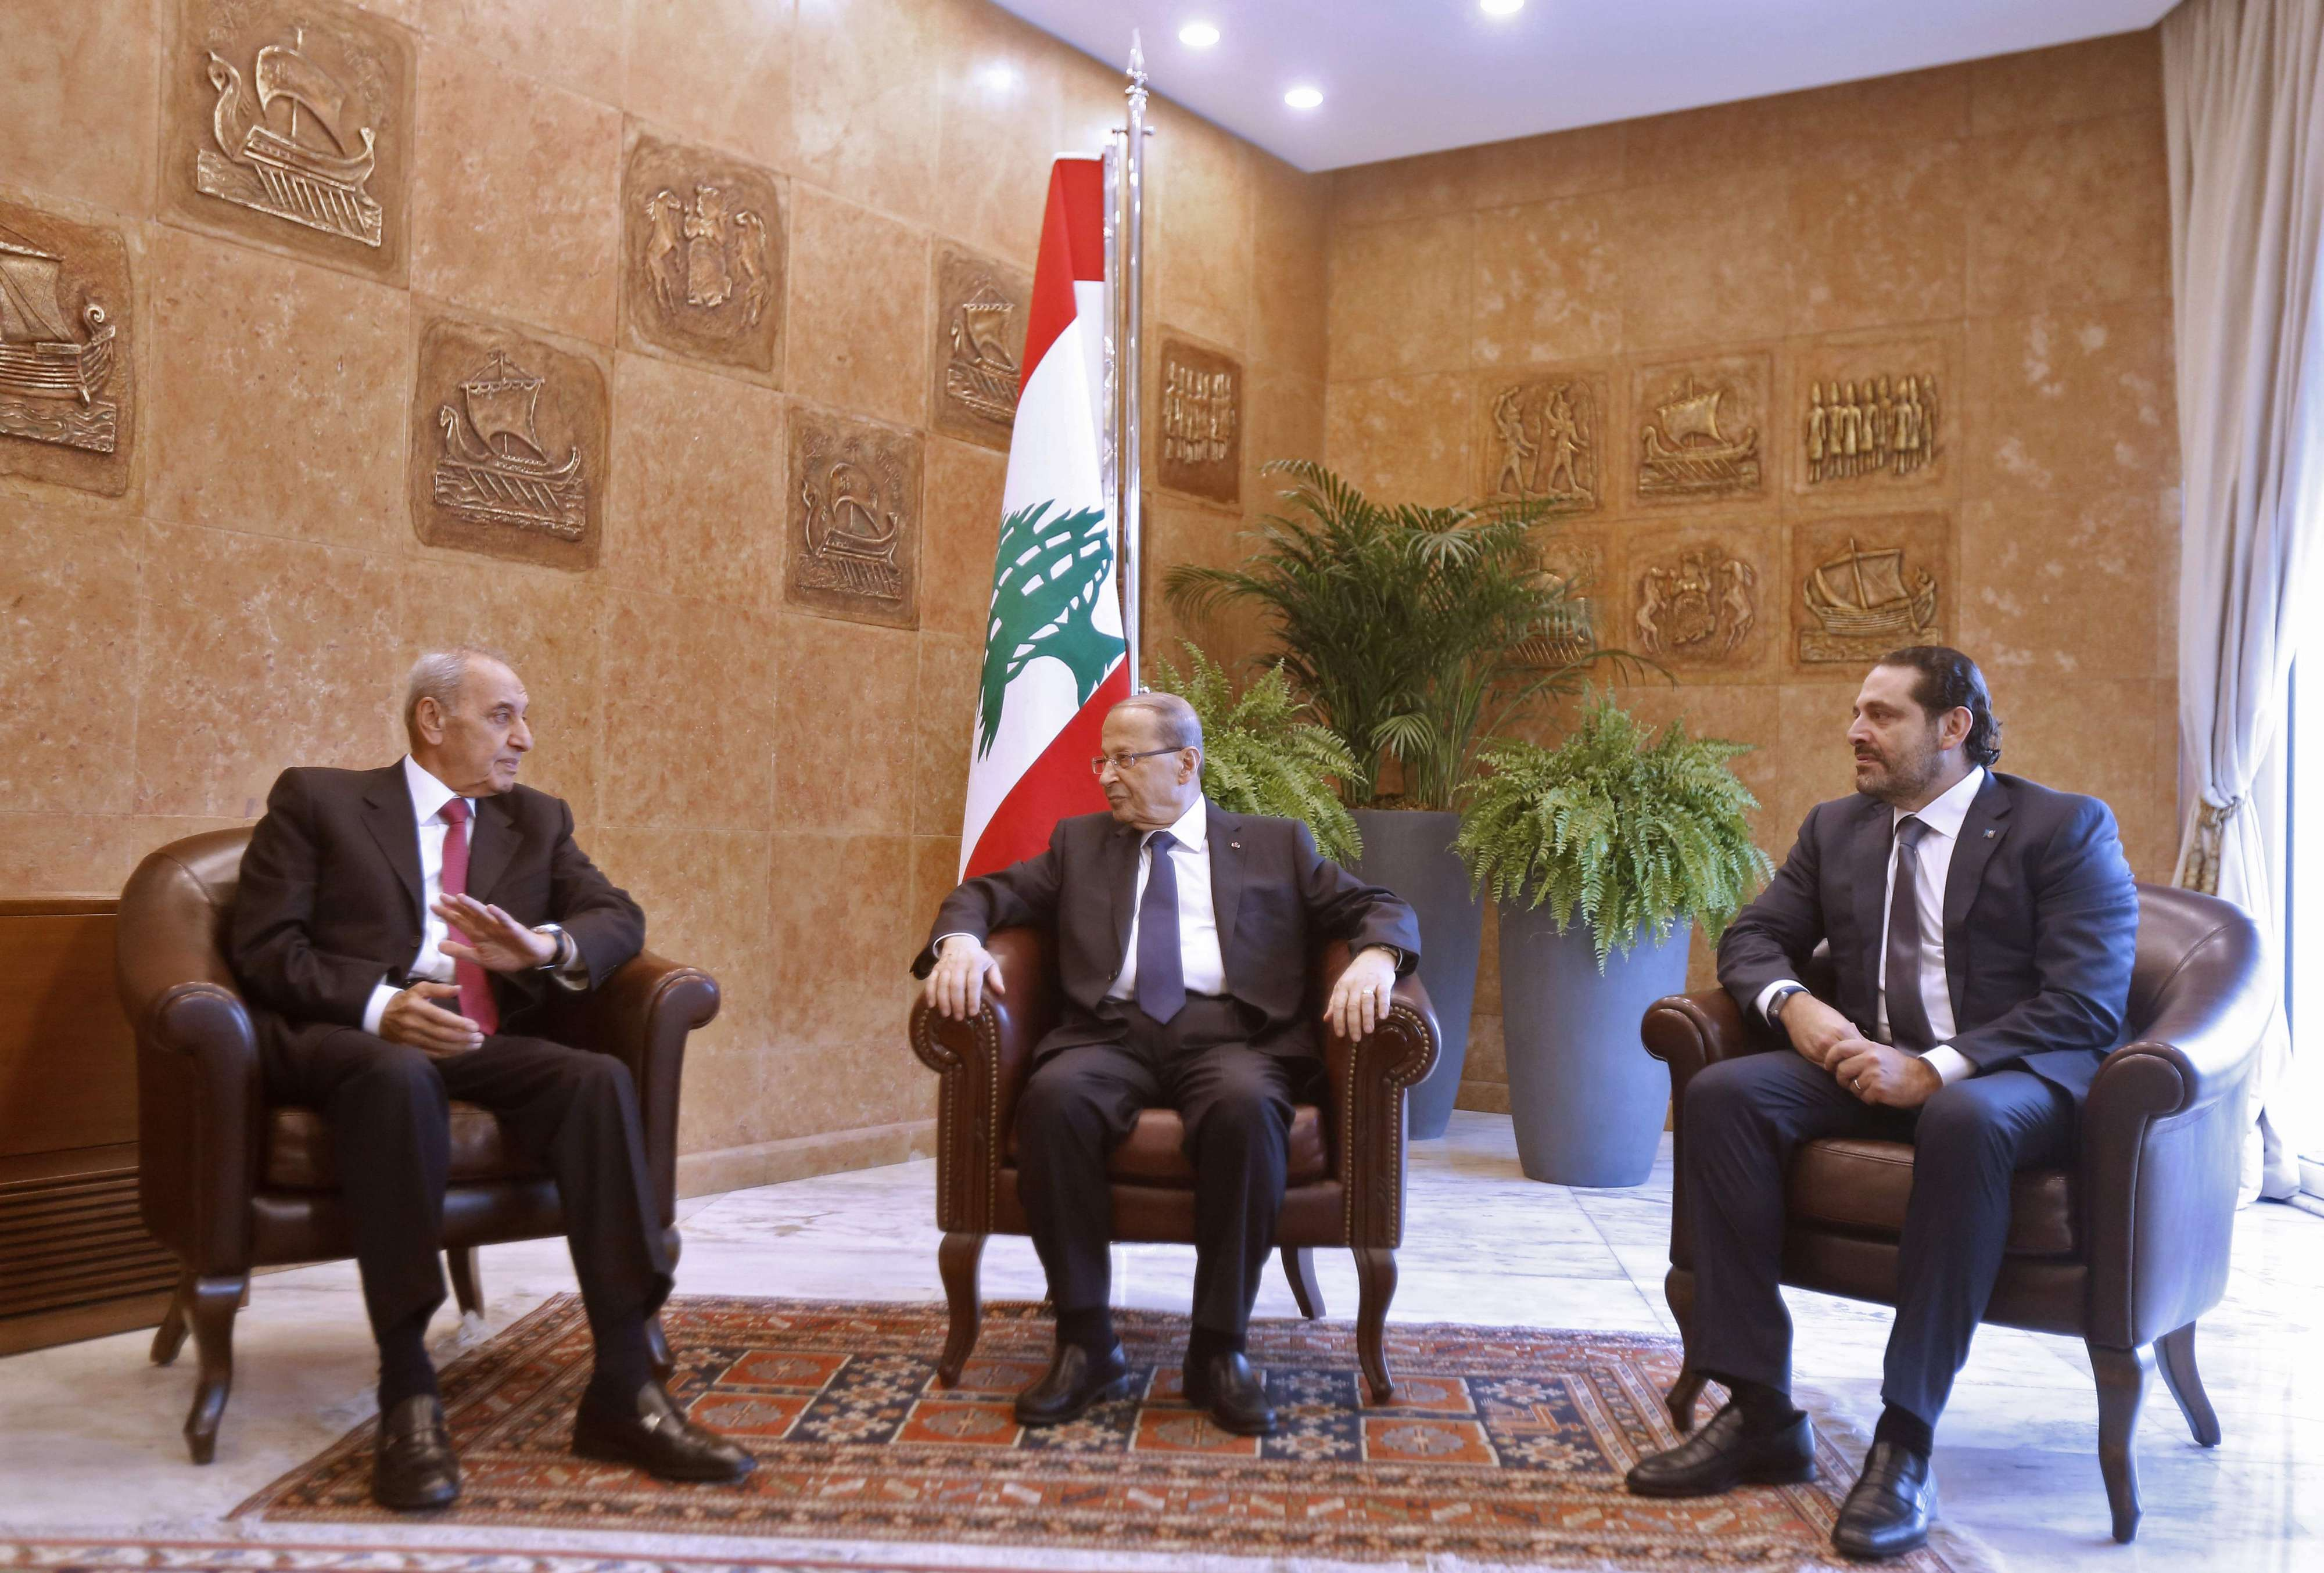 In hot water. Lebanese Prime Minister Saad Hariri (R), President Michel Aoun (C) and Parliament Speaker Nabih Berri at the presidential palace in Baadba, last November. (AFP)